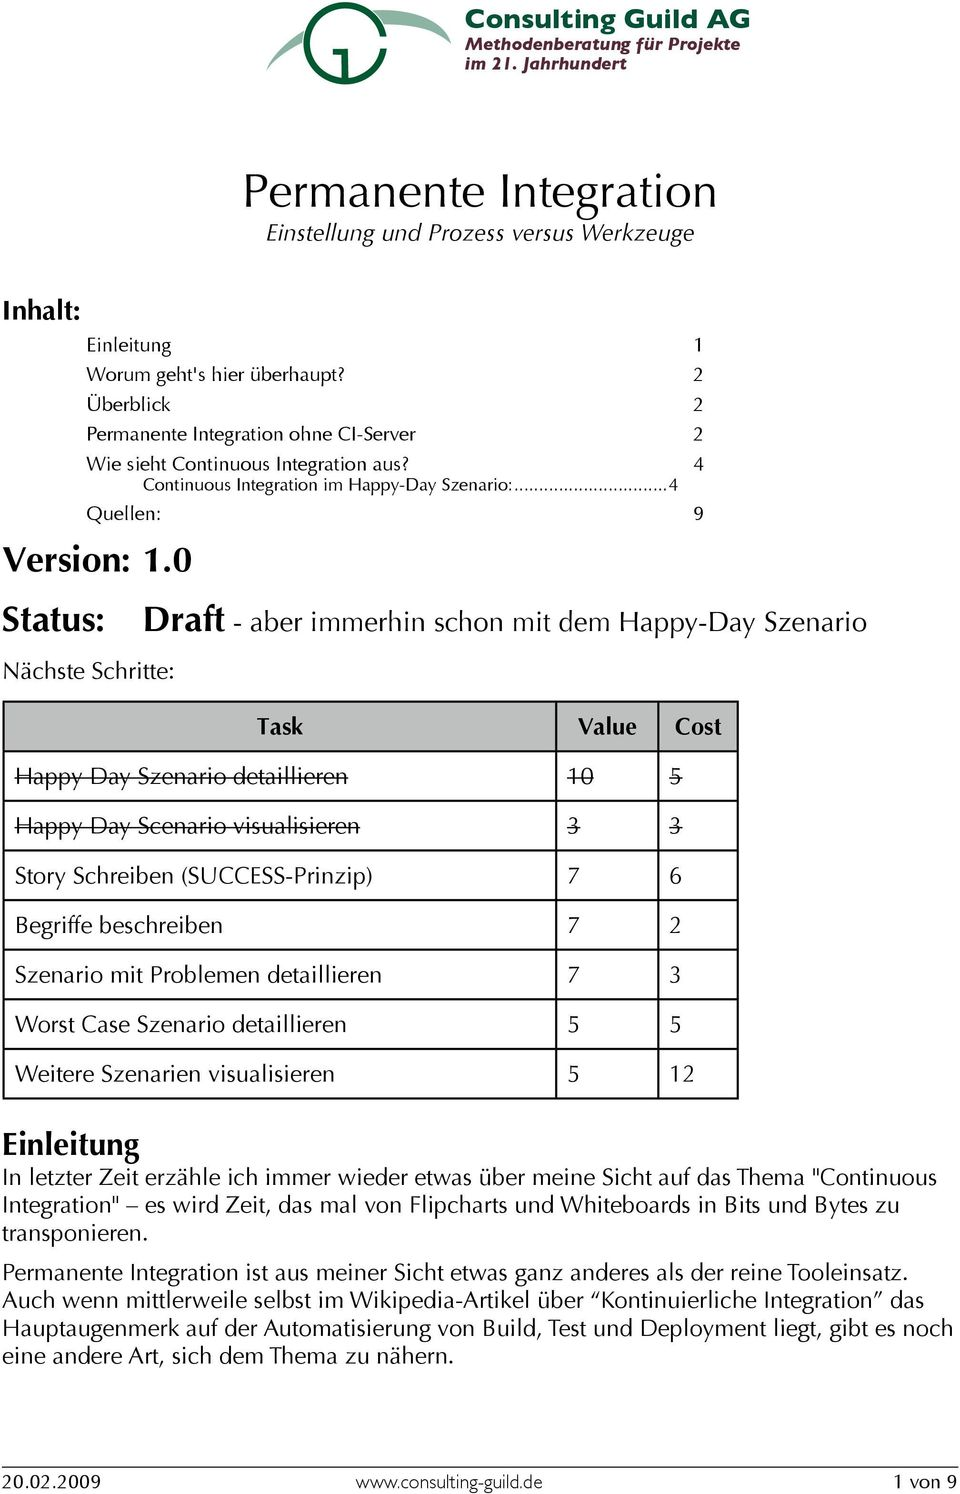 0 Status: Draft - aber immerhin schon mit dem Happy-Day Szenario Nächste Schritte: Task Value Cost Happy Day Szenario detaillieren 10 5 Happy Day Scenario visualisieren 3 3 Story Schreiben